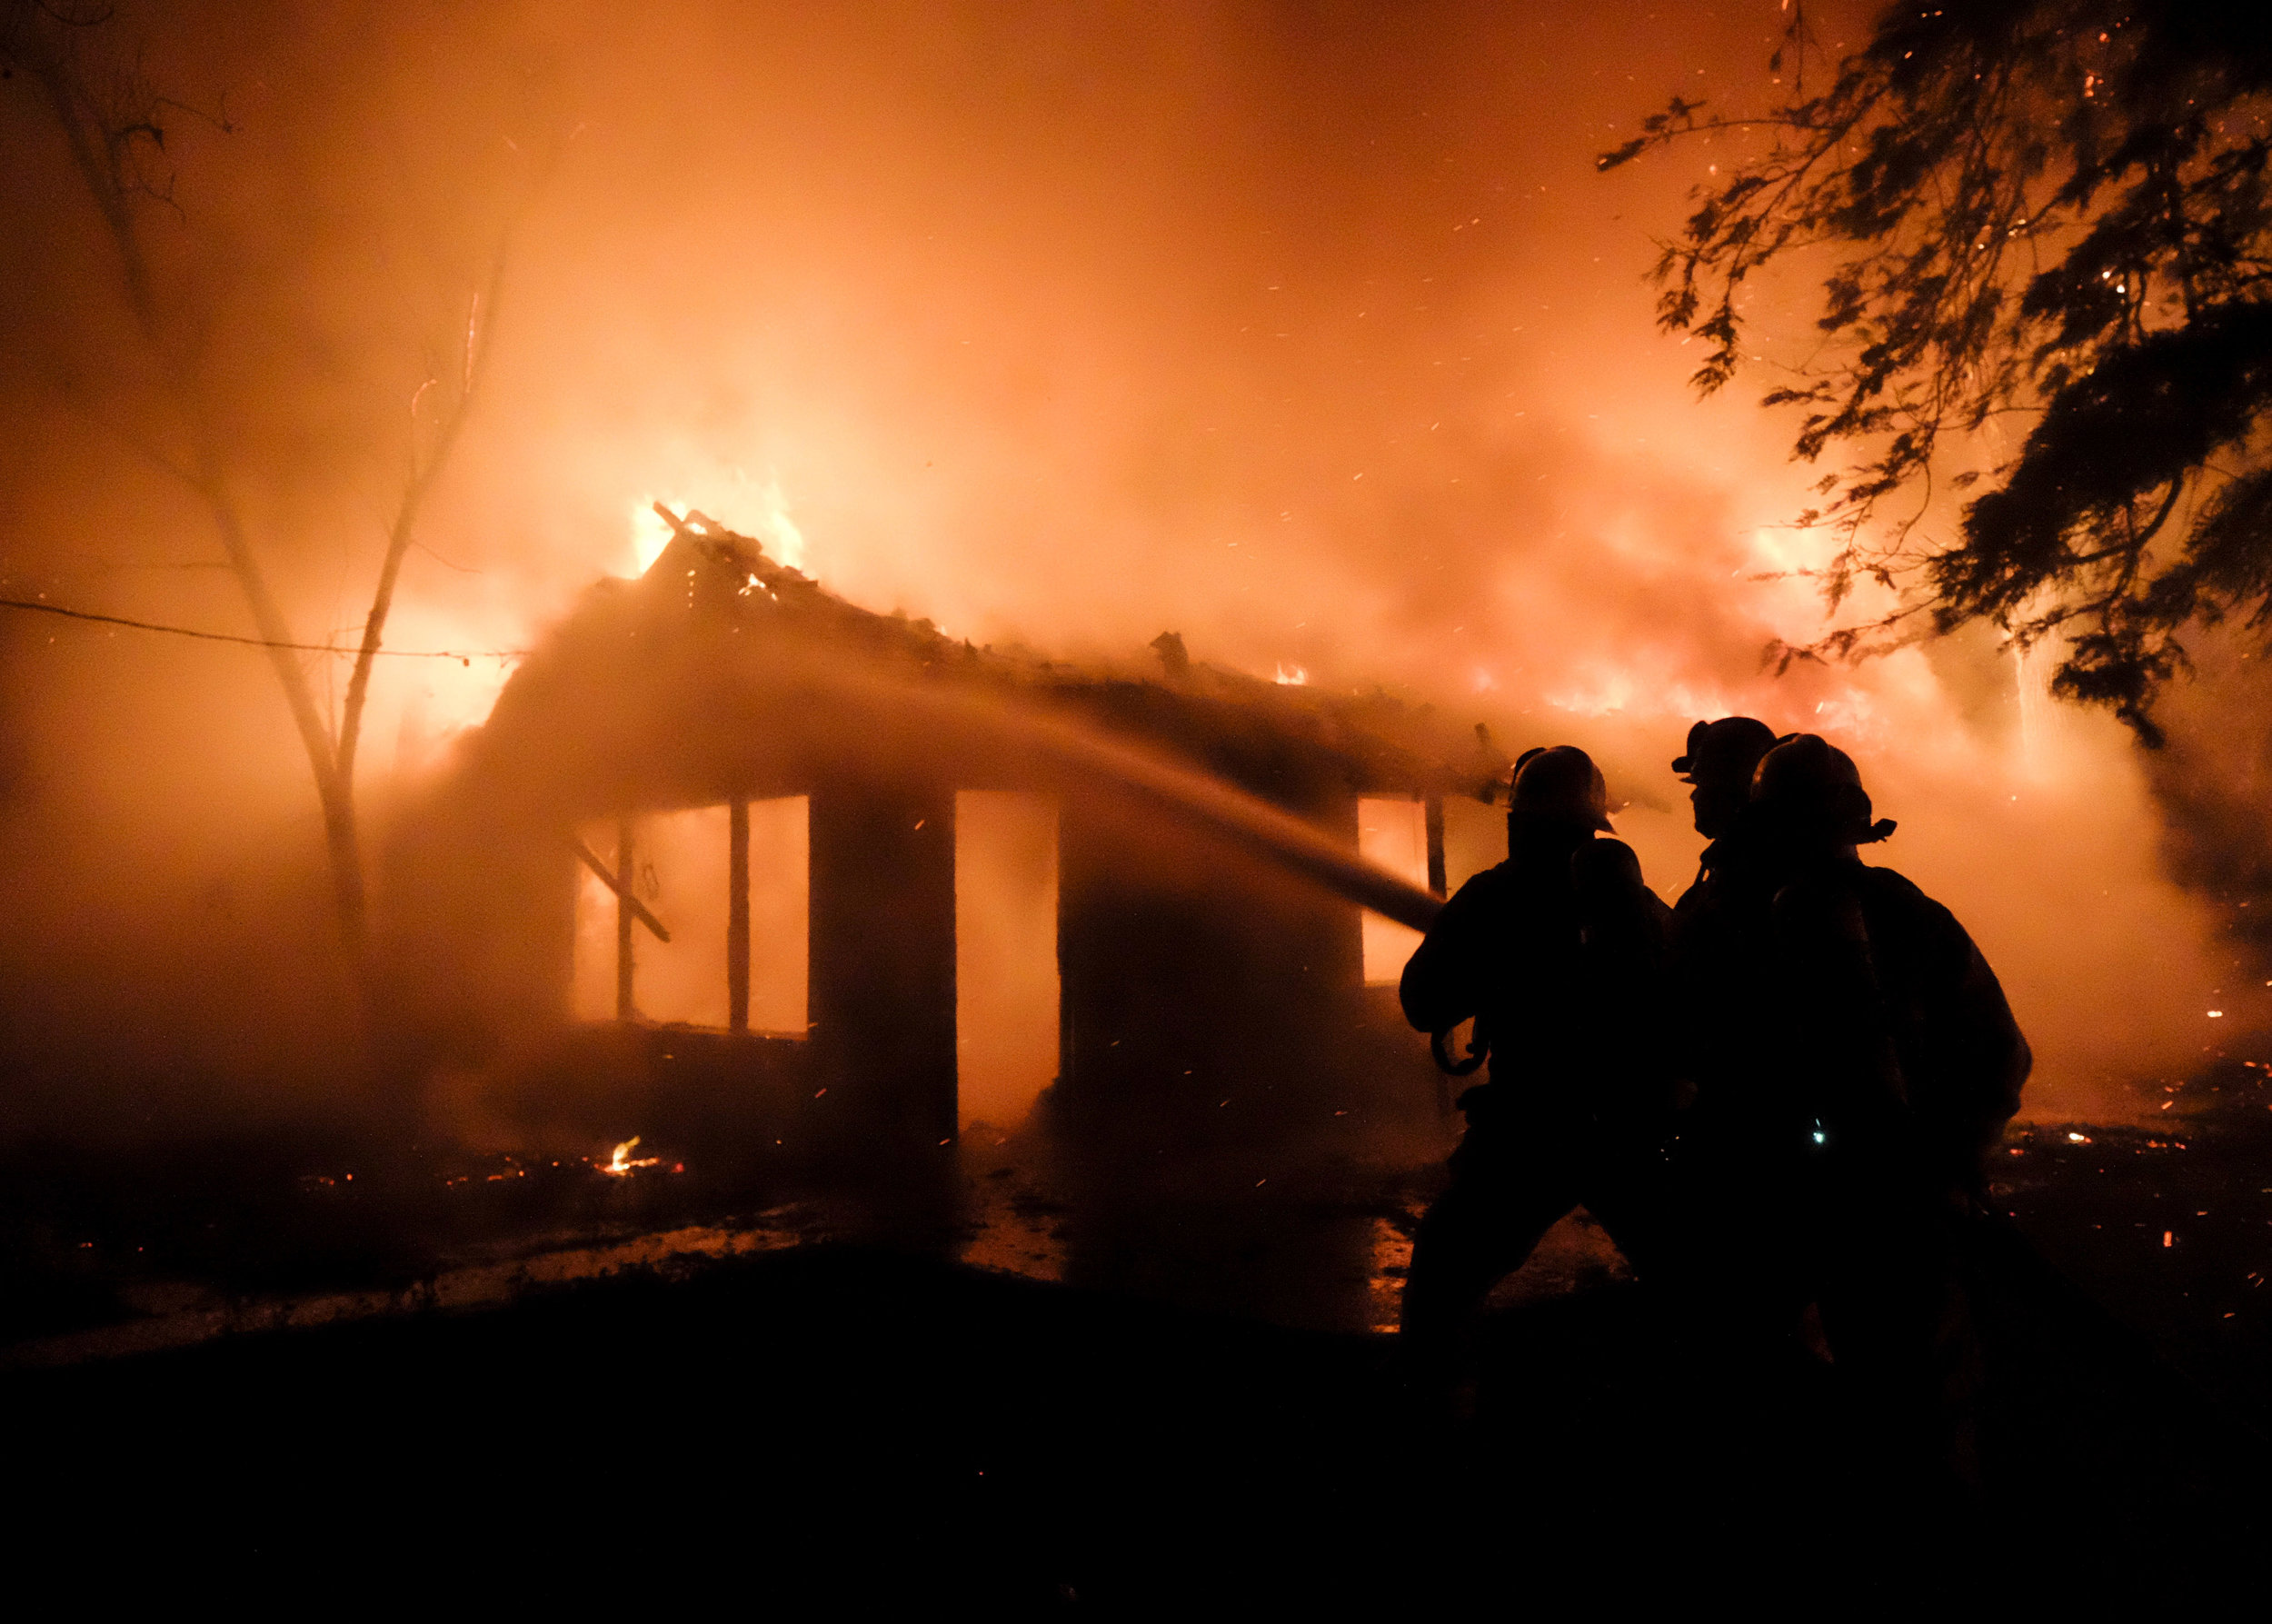 Firefighters battle a fire that destroyed a house Wednesday night, May 2, 2018, in Rosemead, California.